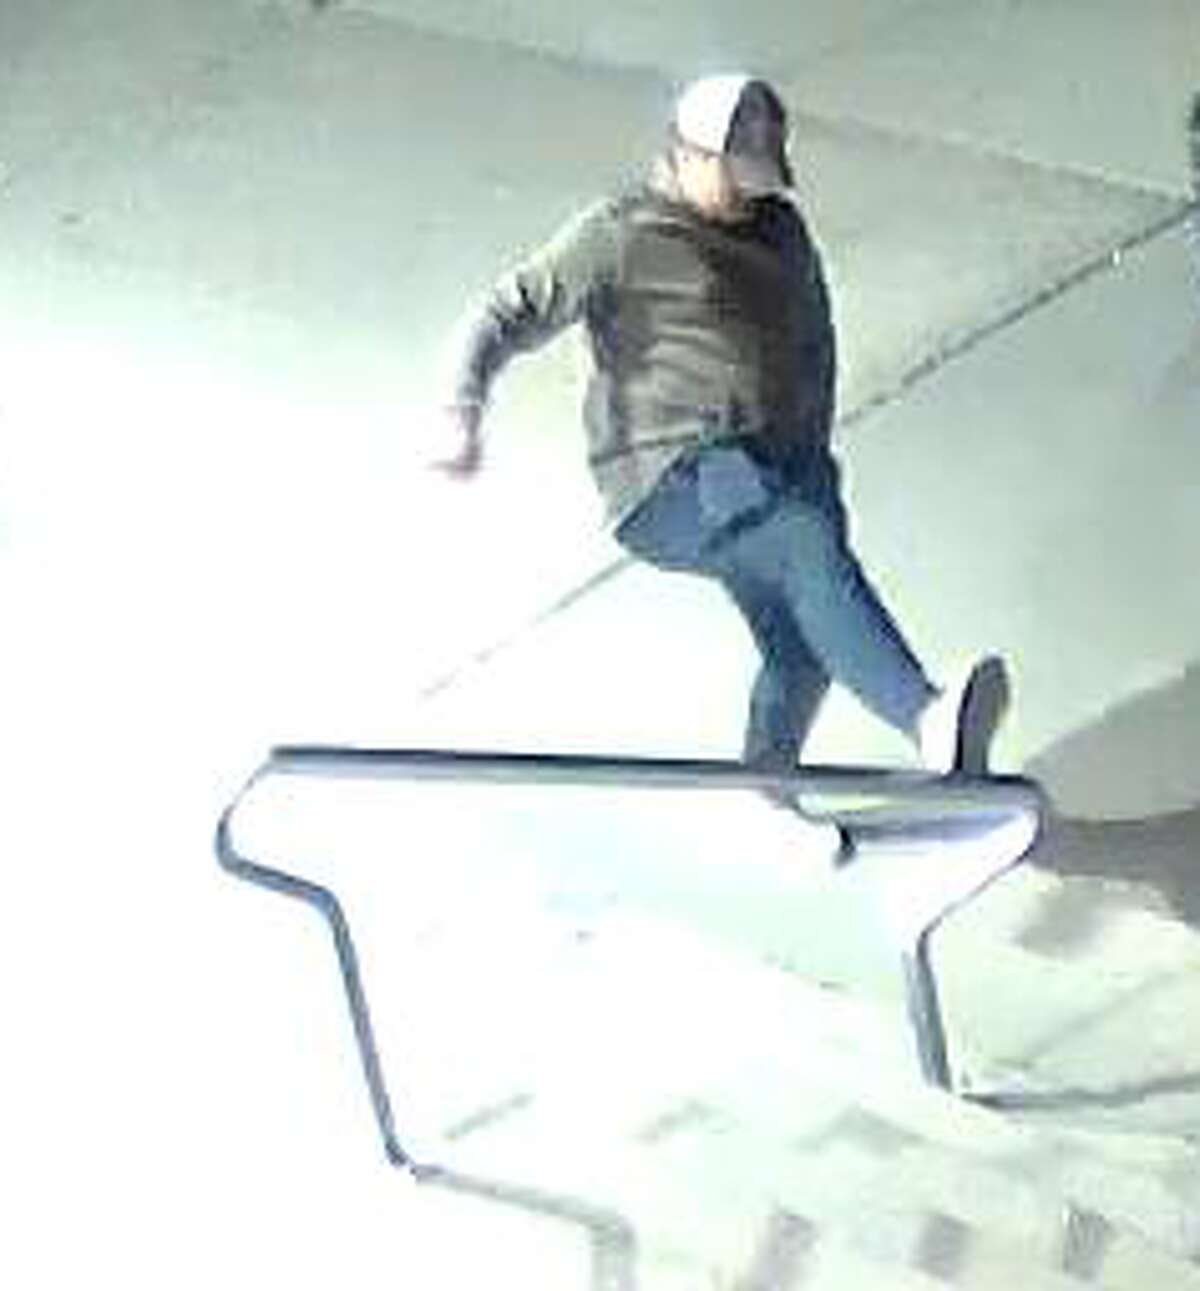 The Big Rapids Department of Public Safety is asking for the public's help in identifying two subjects who damaged a handrail at the Big Rapids Community Library.